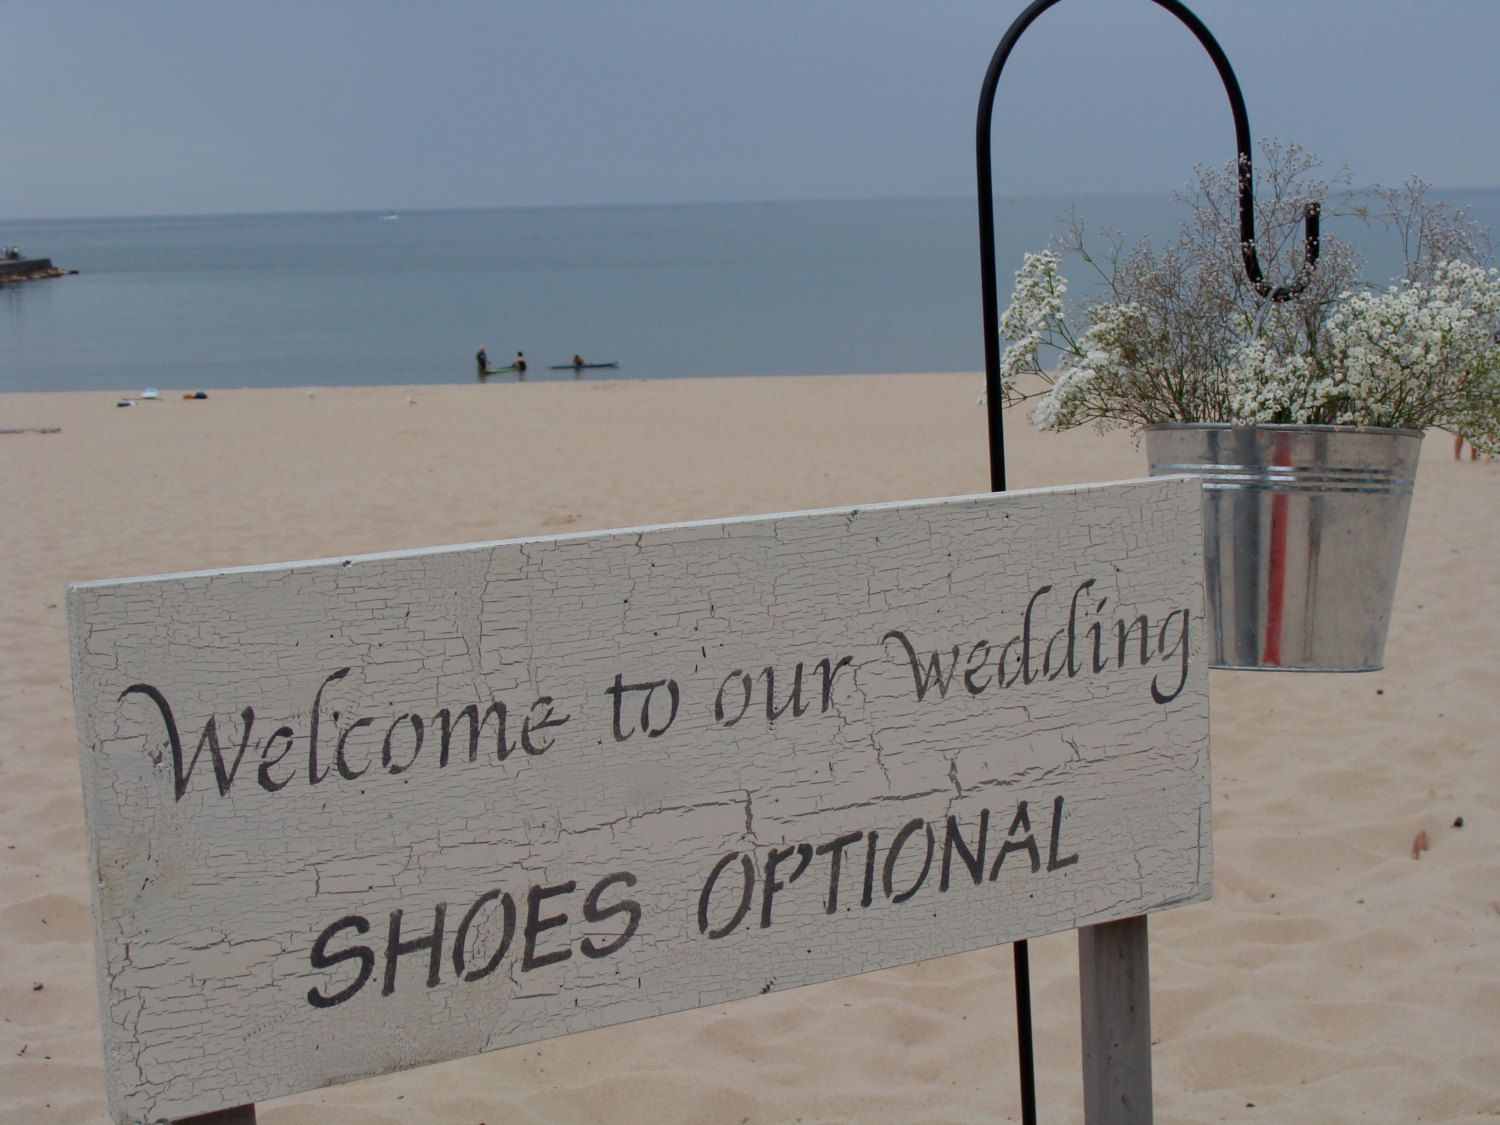 Vintage Beach Wedding Ceremony: Handmade Welcome To Our Wedding Shoes Optional Vintage